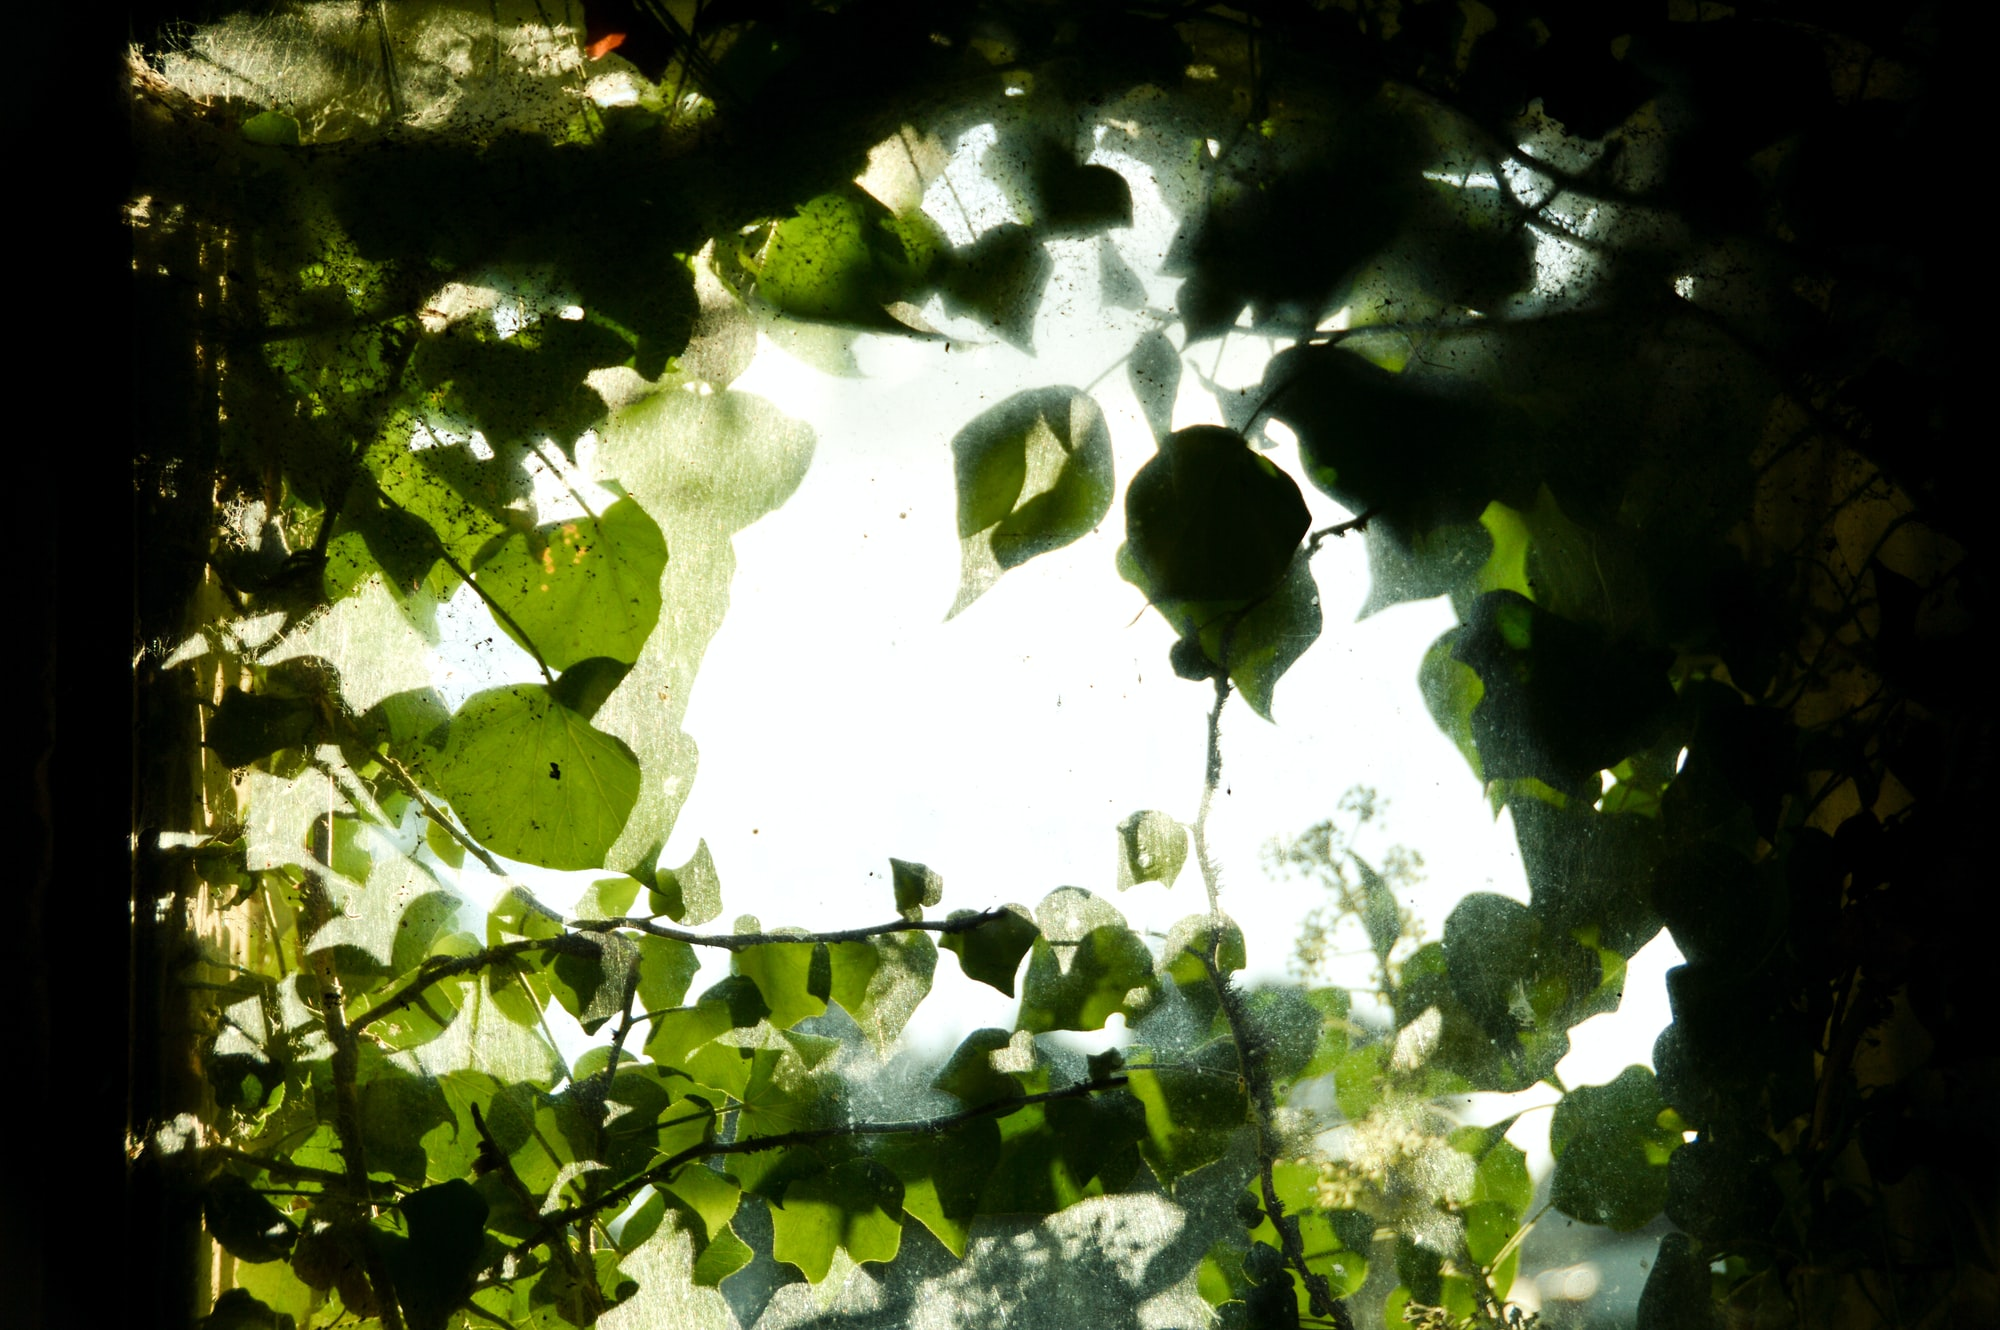 This is a window in a disused shed. The building exterior is overgrown with ivy.  From the inside the the dusty widow forms a screen that diffuses the light and gives the leaves a ghostly appearance. I was interested in exploring the multiple levels of opaque screen, silhouette and depth of field.